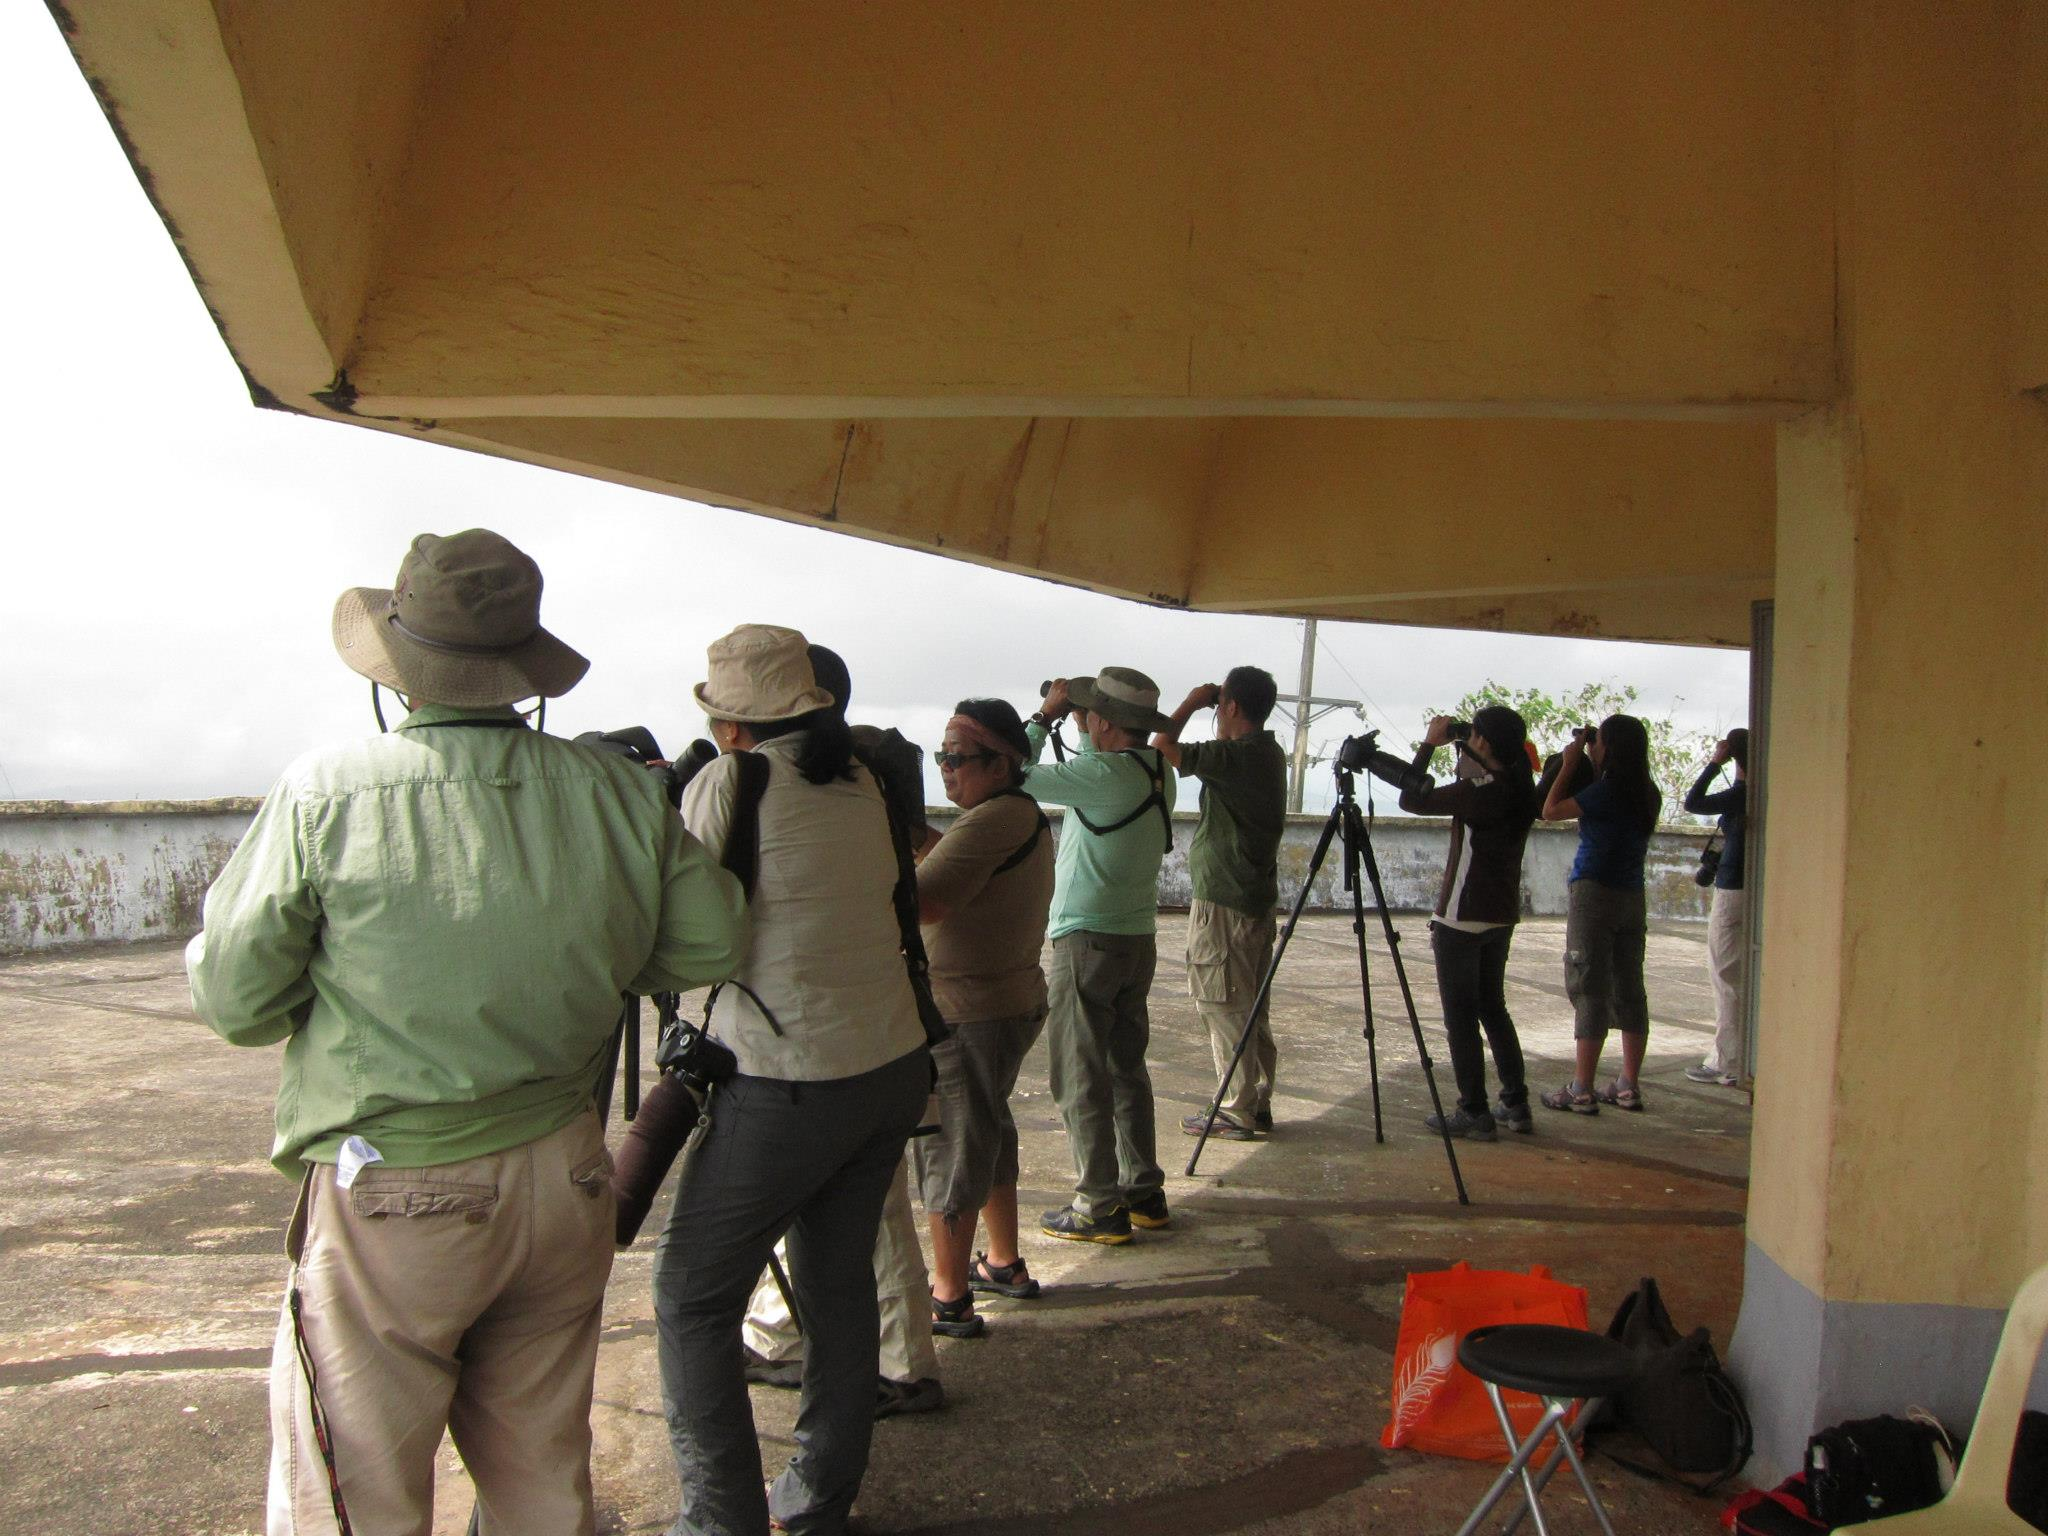 Birders watching the skies and counting raptors. Photo by Tere Cervero.